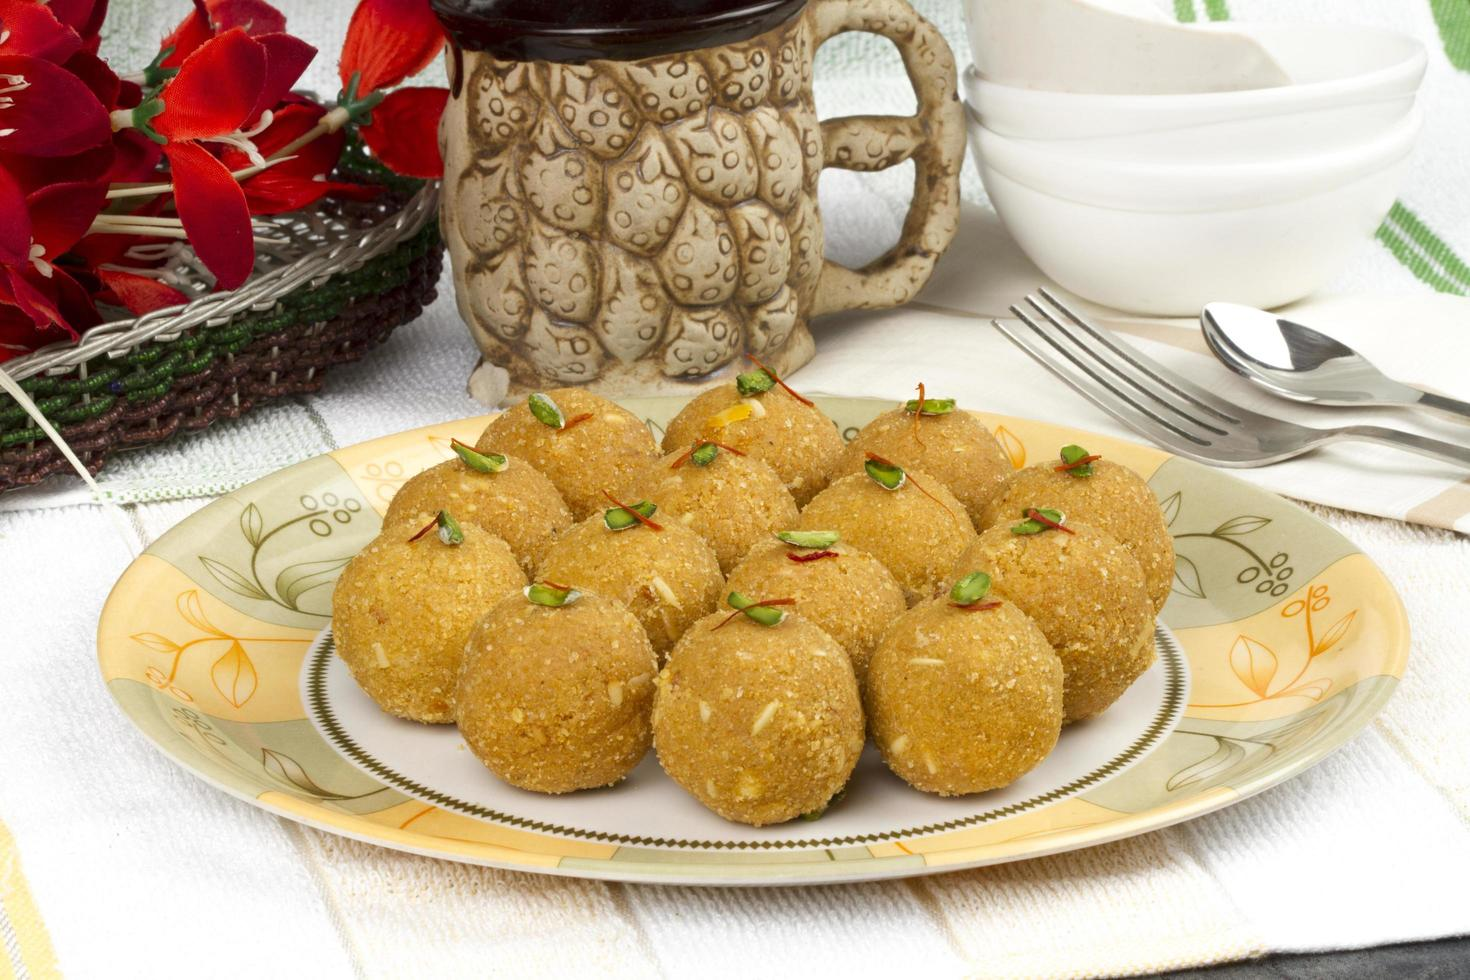 nourriture sucrée indienne traditionnelle spéciale besan laddu photo